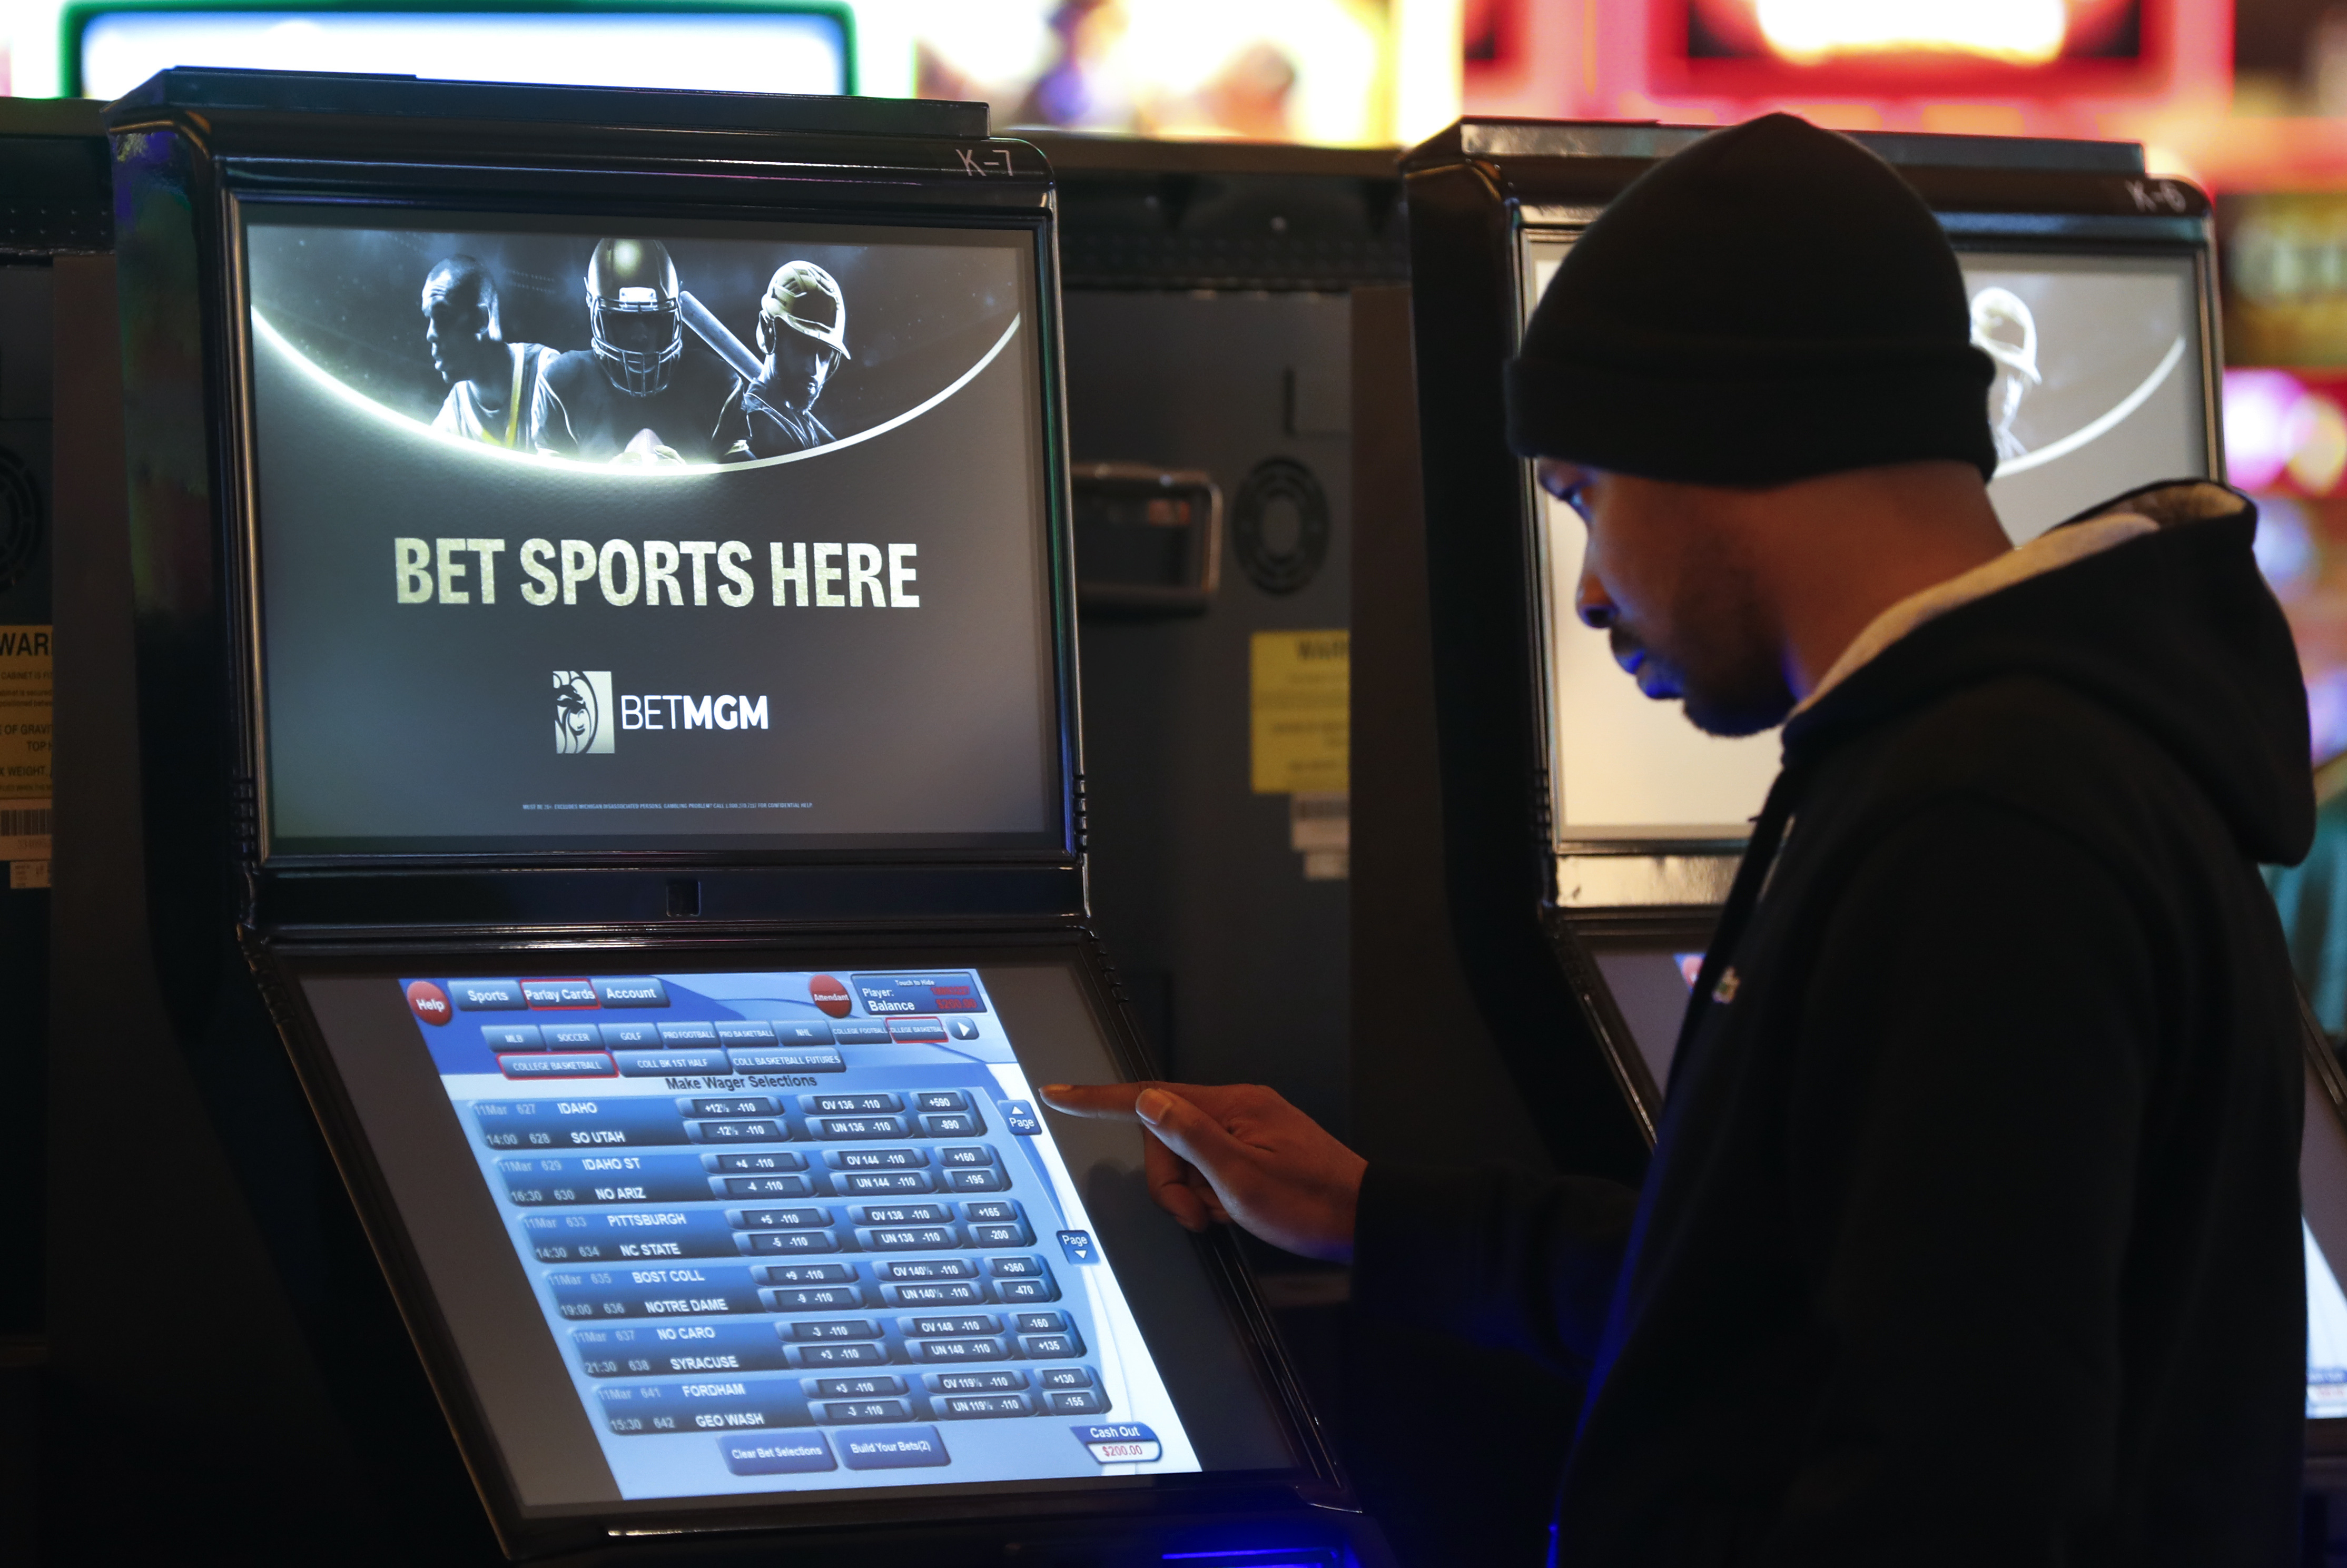 Ea sports betting betfair lay betting payout for belmont